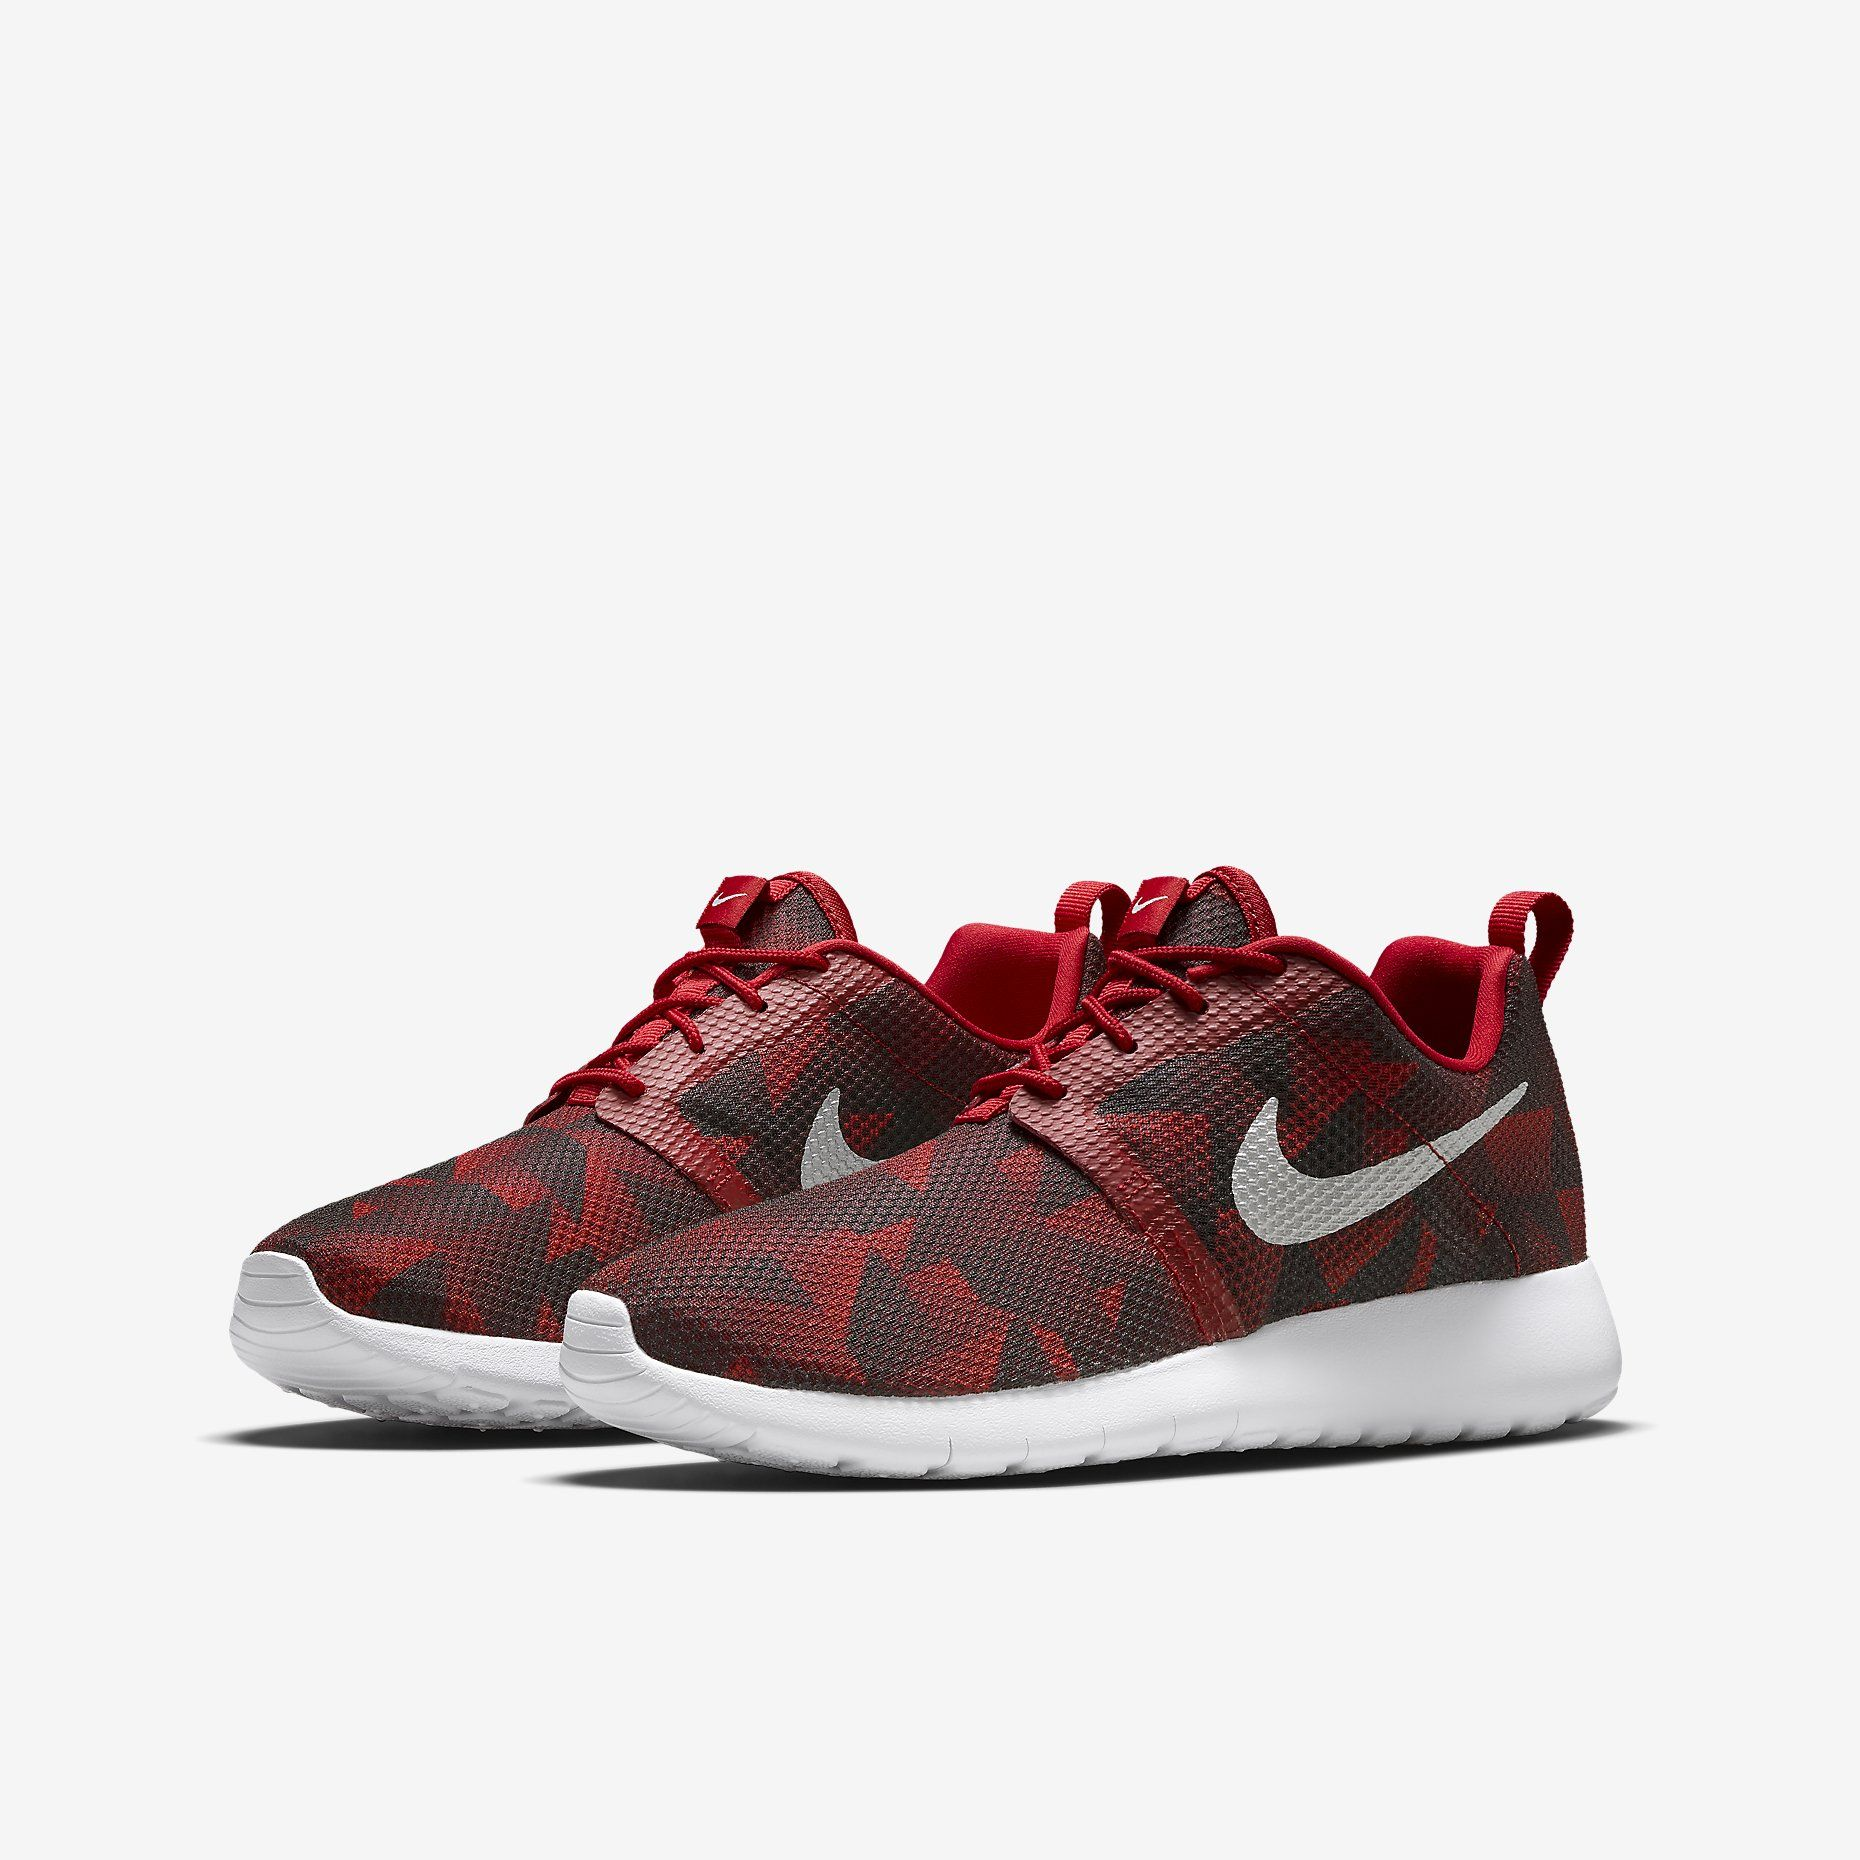 60fa6bf4a770 Nike Roshe One Flight Weight (3.5y-7y) Kids  Shoe. Nike Store ...